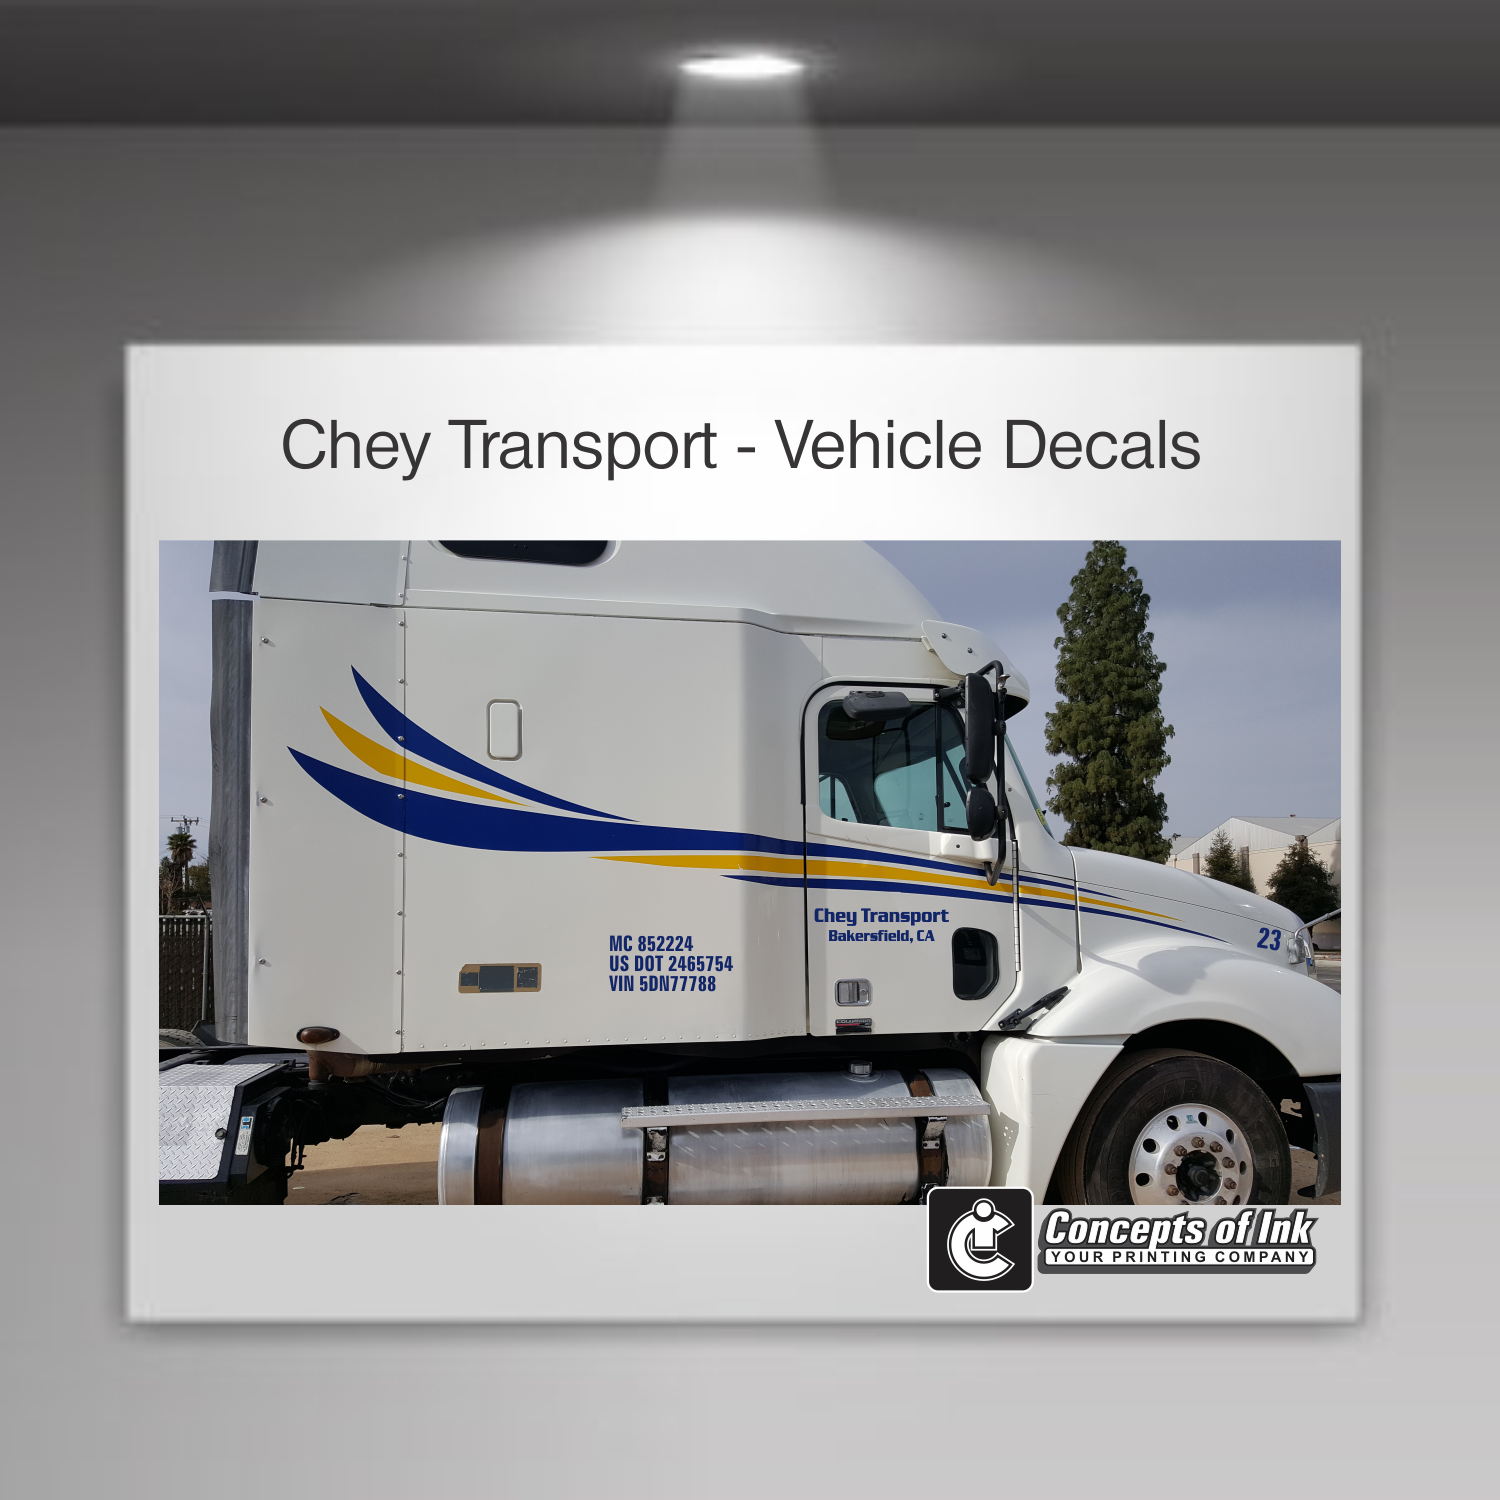 Chey Transport